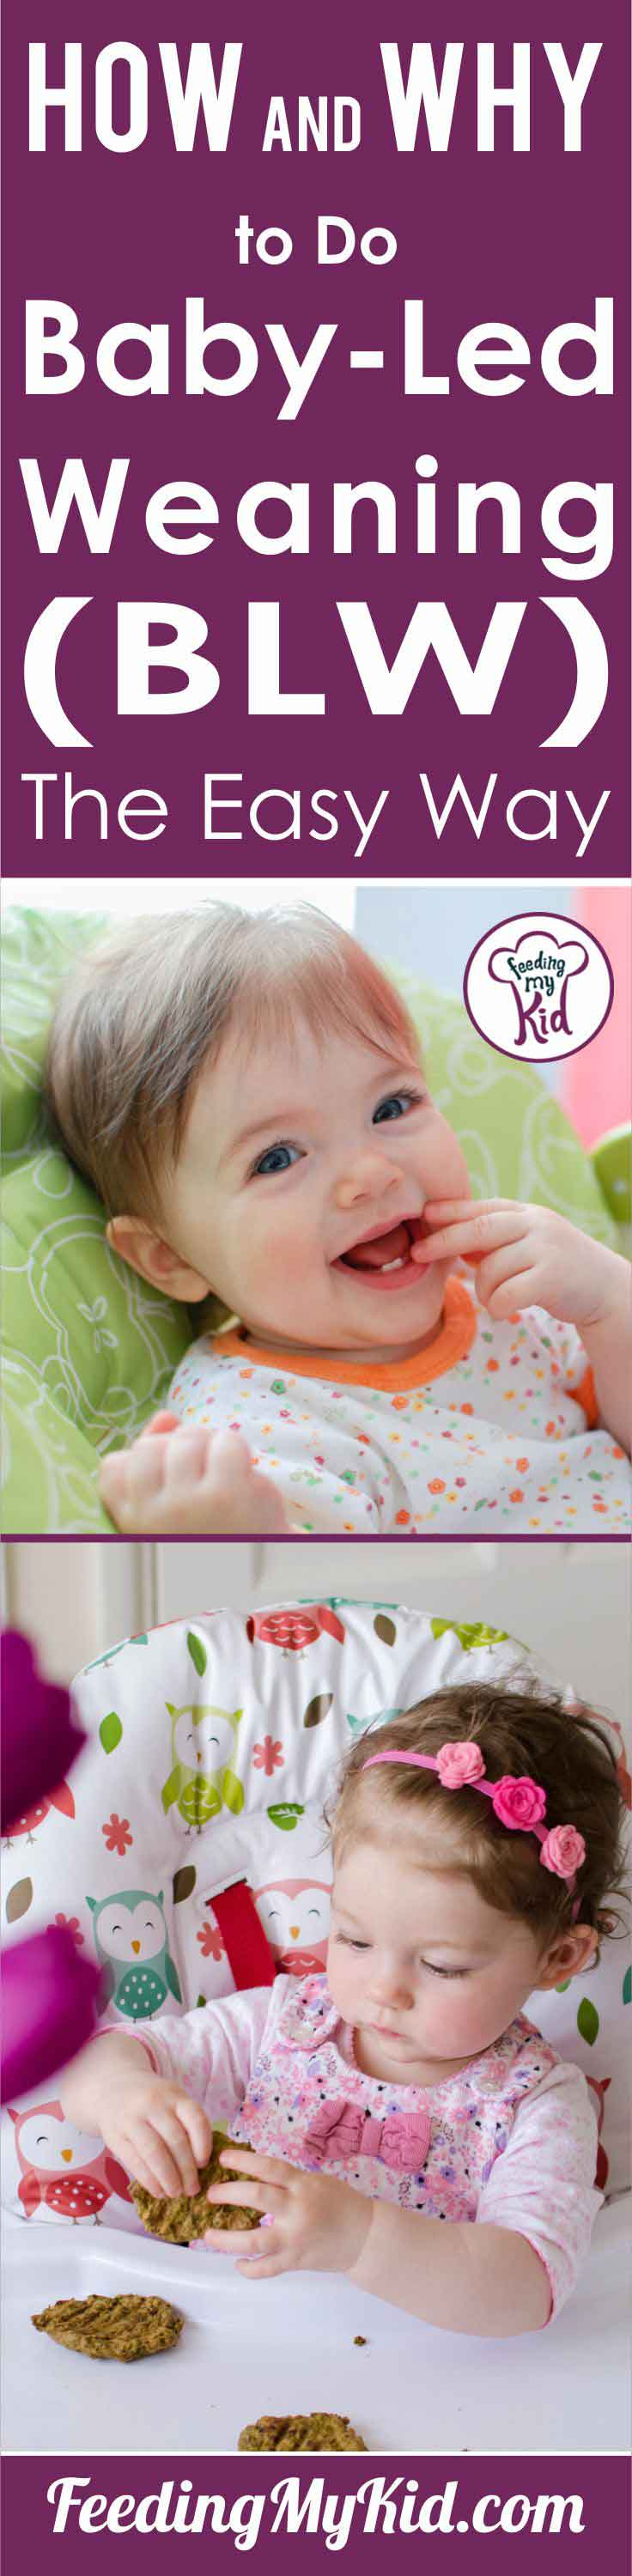 Baby led weaning is a great tool for many parents. Learn how baby led weaning helped this mom live a healthier and stress-free life.